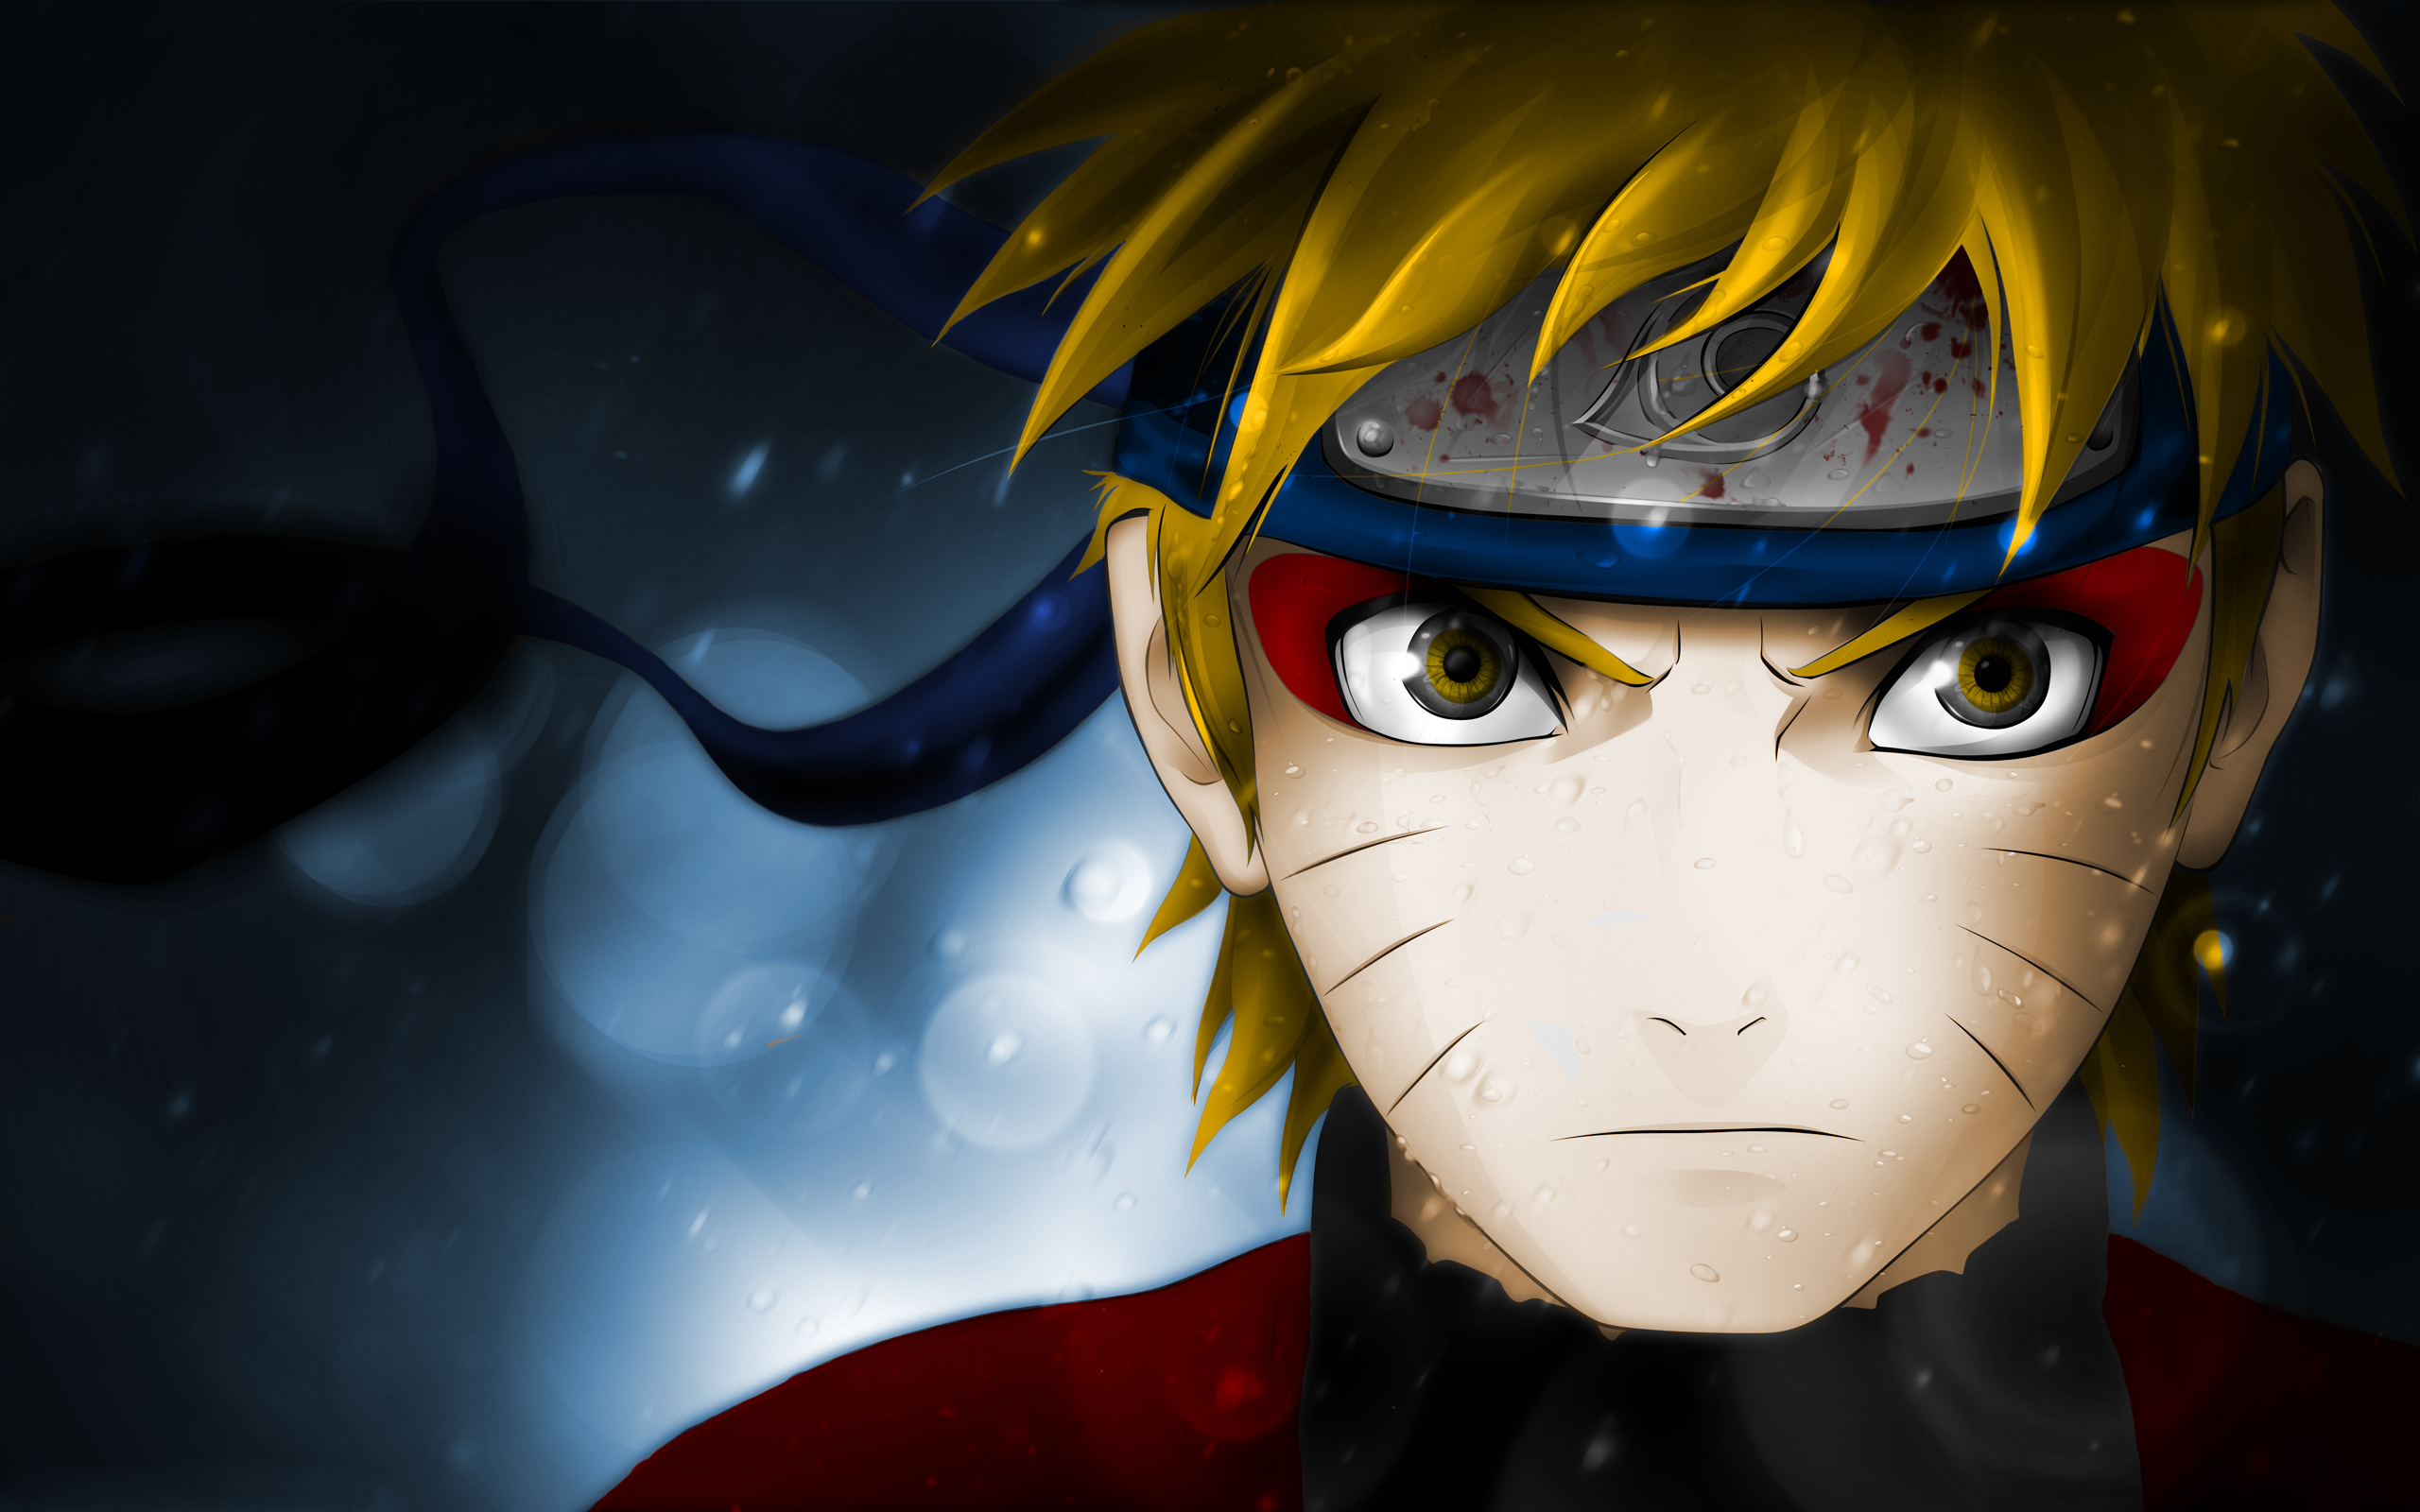 Naruto Res: 2560x1600 / Size:1369kb. Views: 2181020